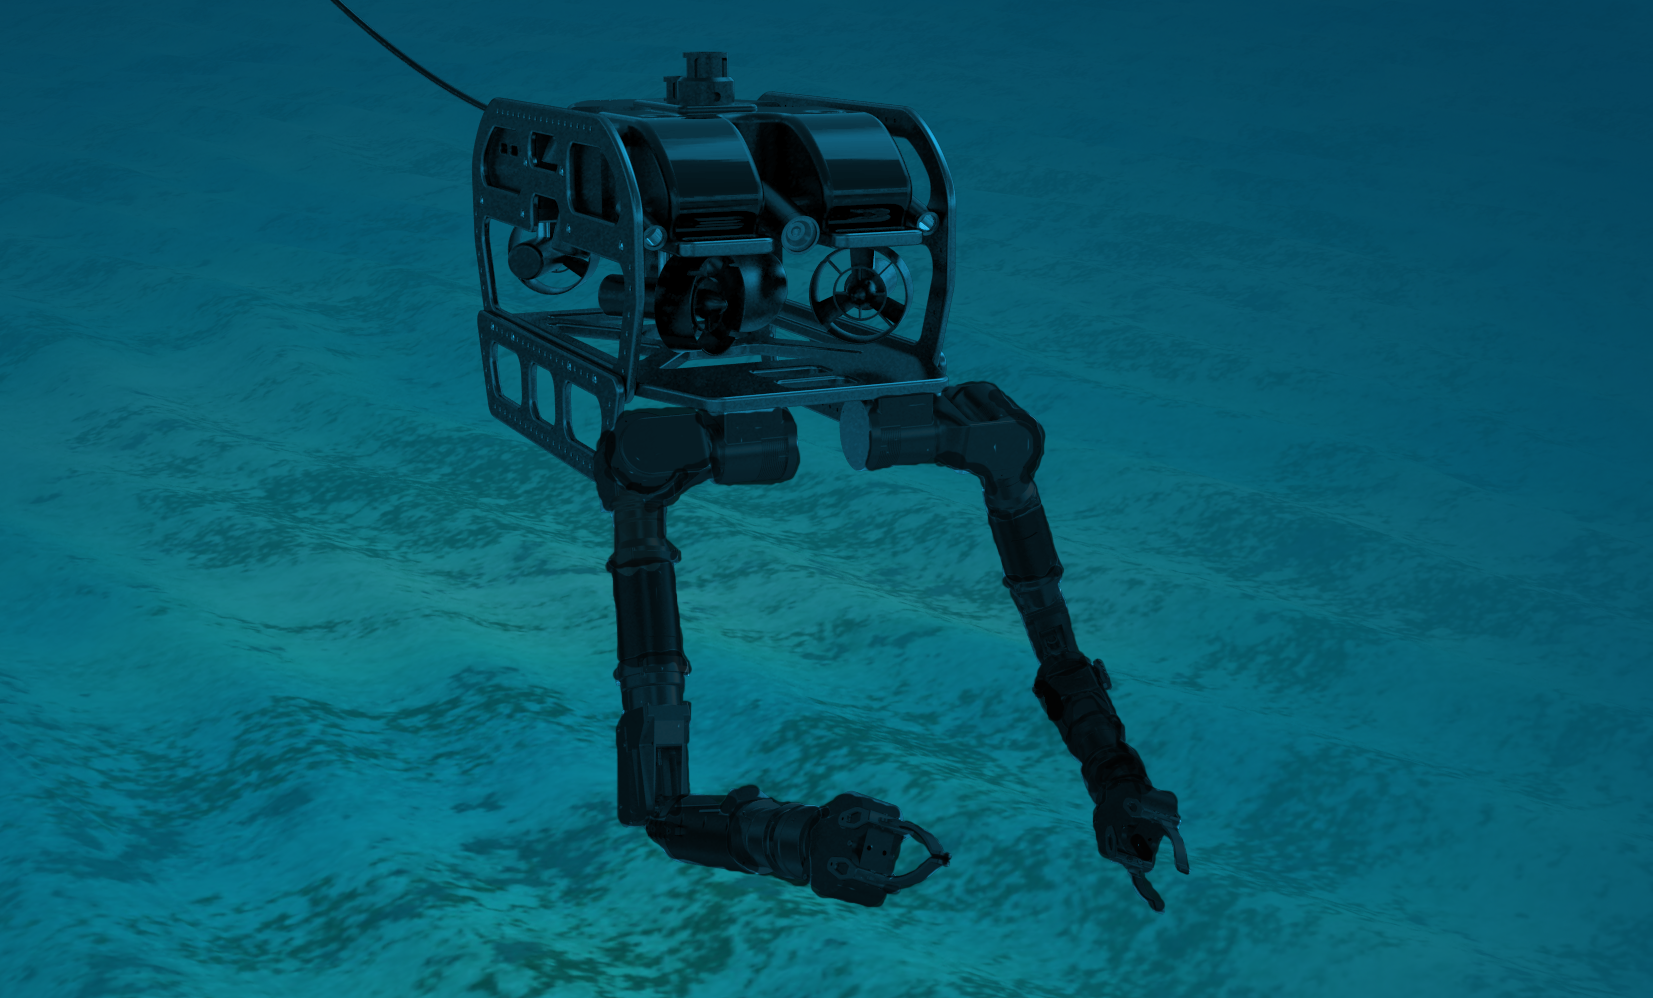 RE2_Robotics_DMEA_OpenWater1.png